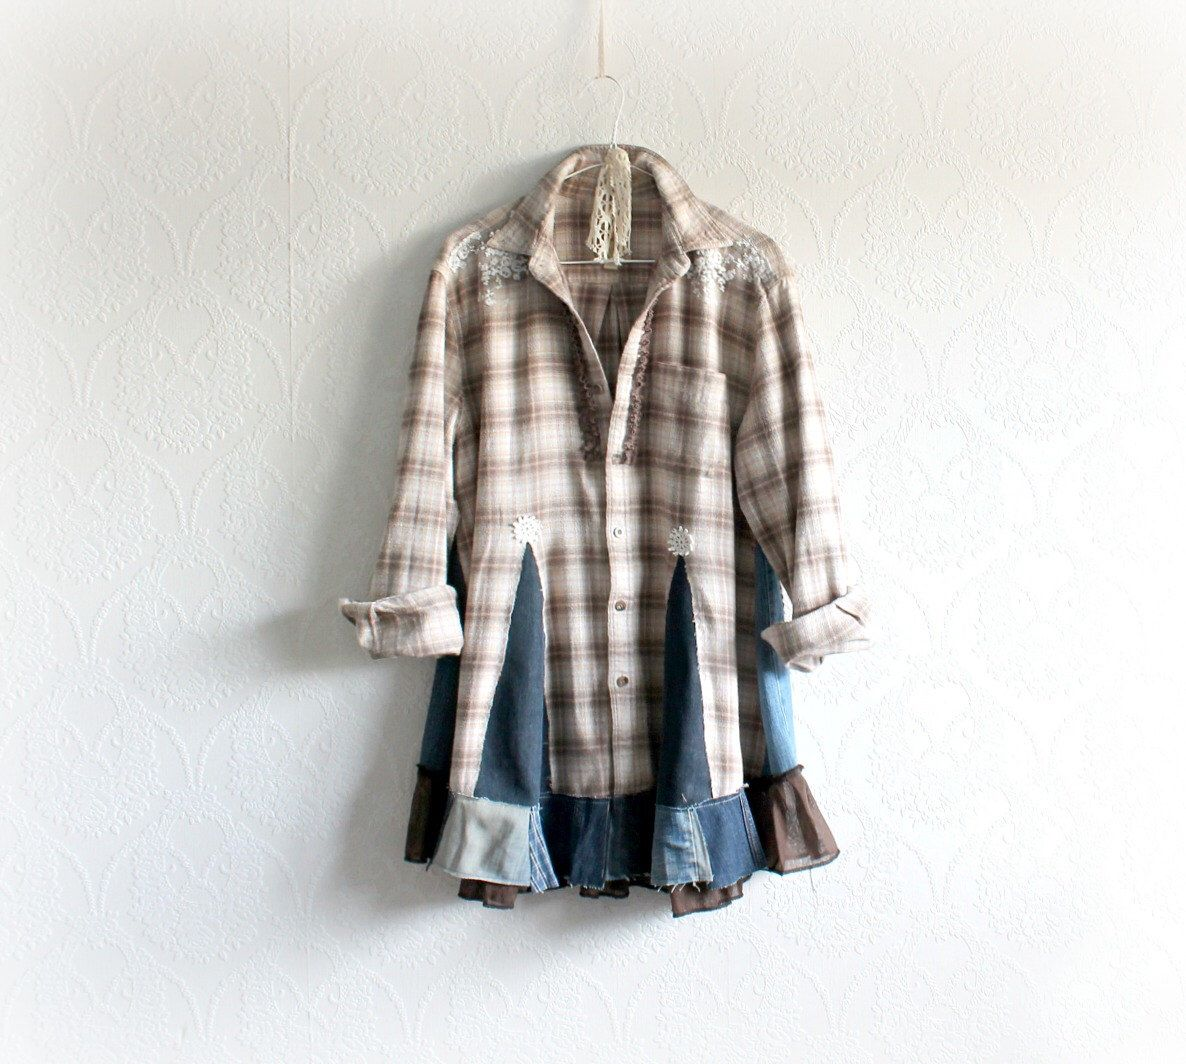 Upcycling Clothes Plaid Flannel Shirt Boho Chic Tunic Upcycled Clothing Rustic